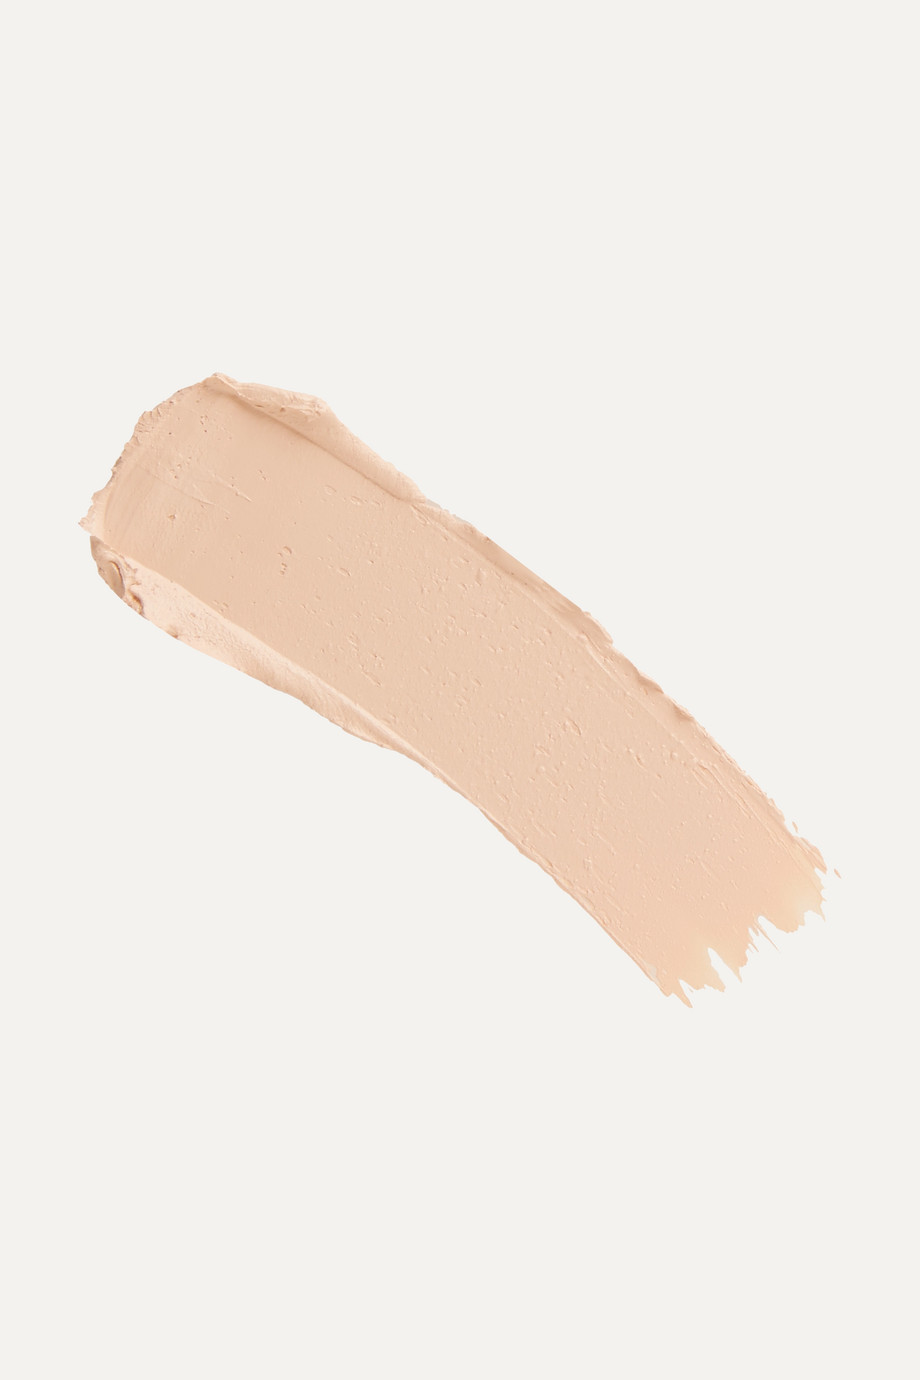 La Mer The Concealer - Medium